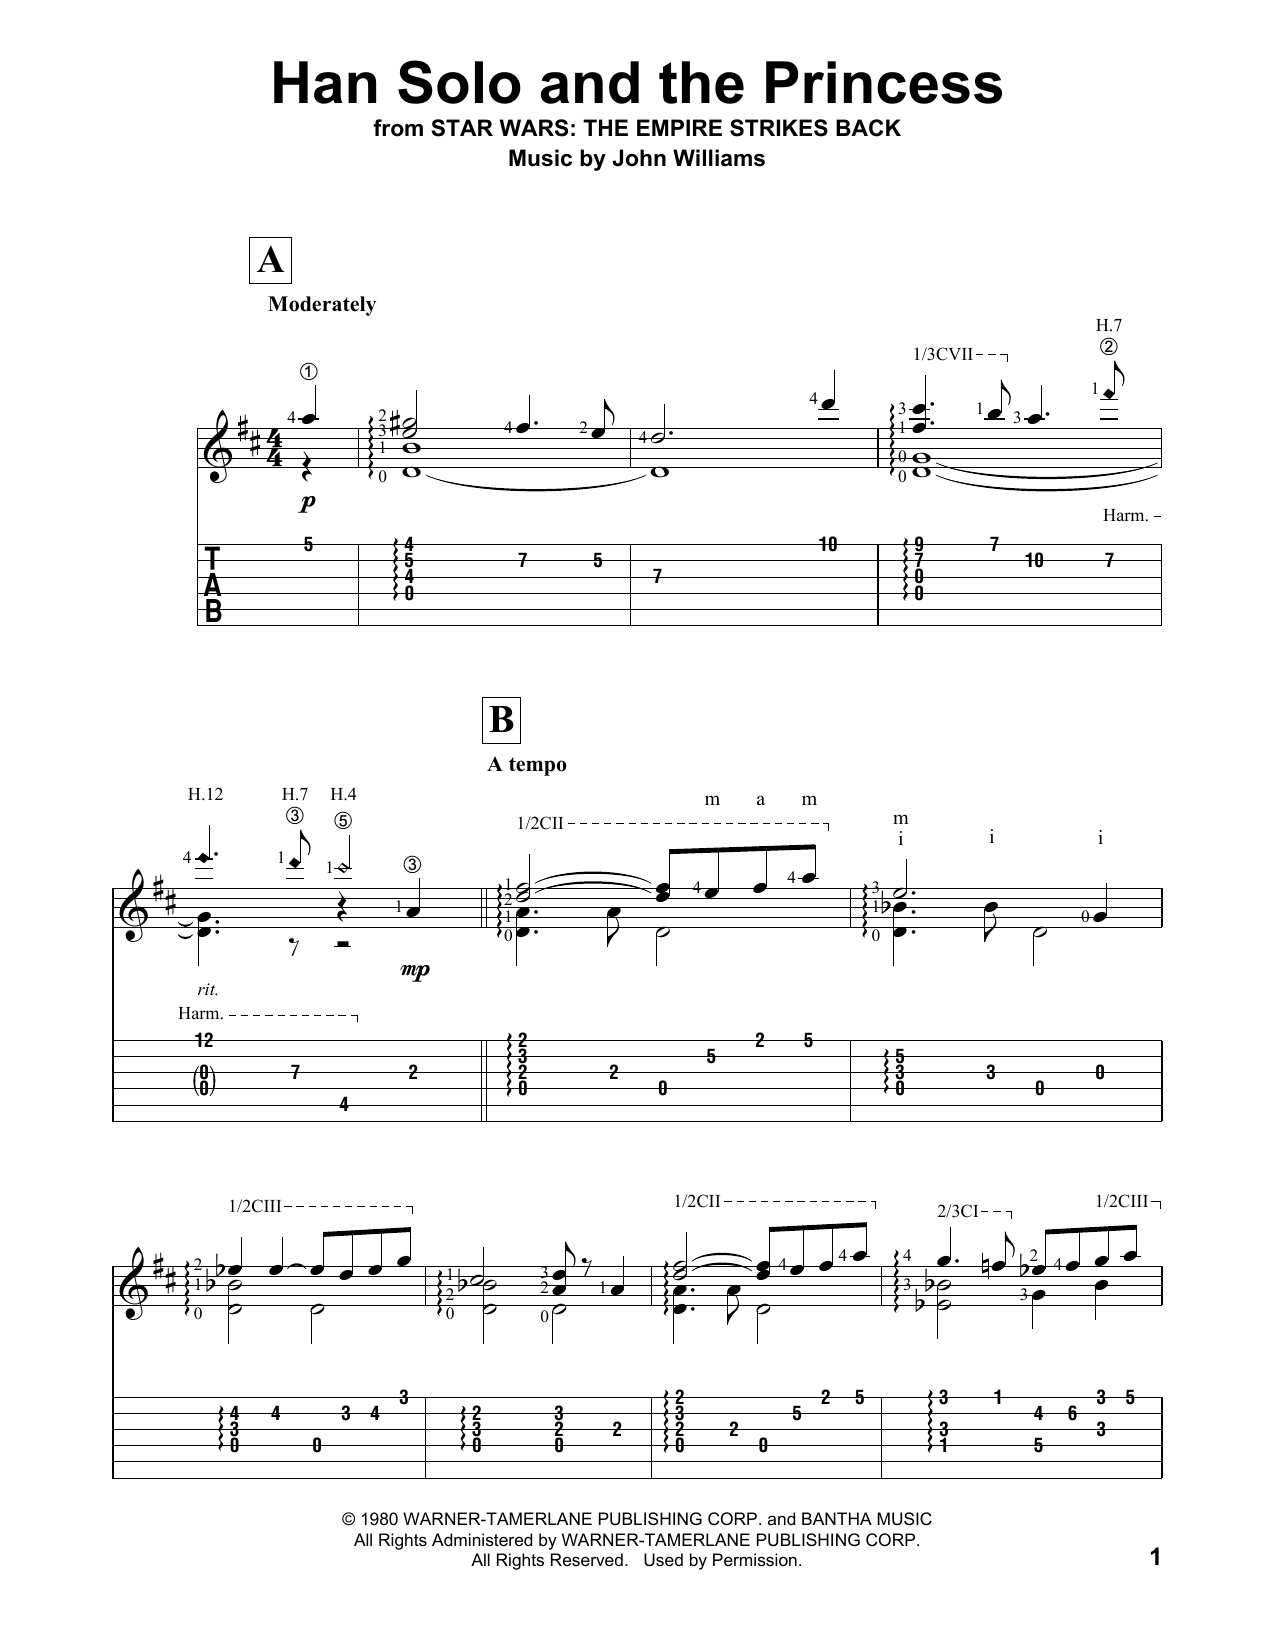 Han Solo And The Princess (from Star Wars: Episode V - The Empire Strikes Back) Sheet Music